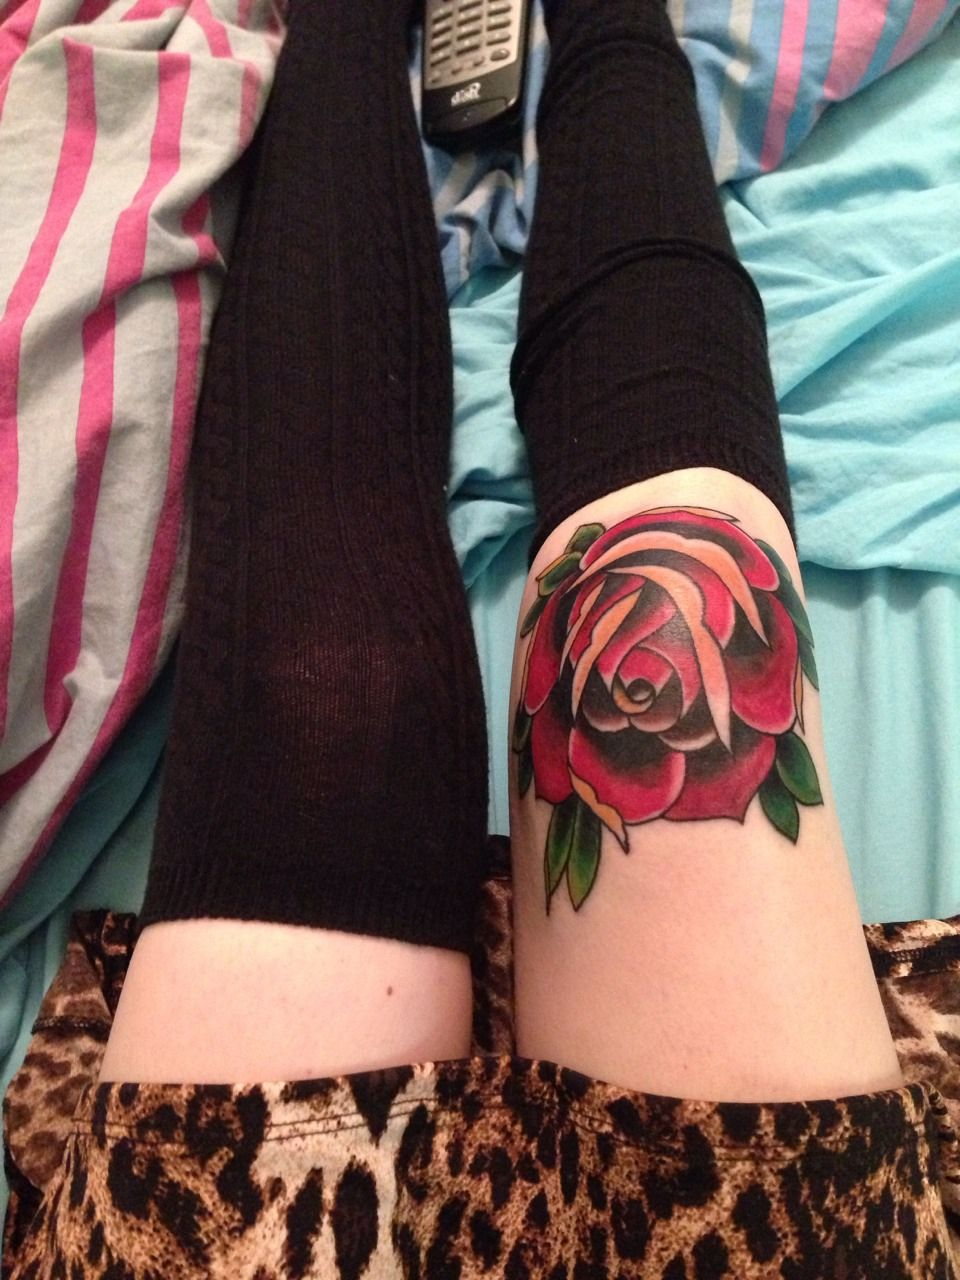 Knee tattoo looks cool but that must have hurt lol knee